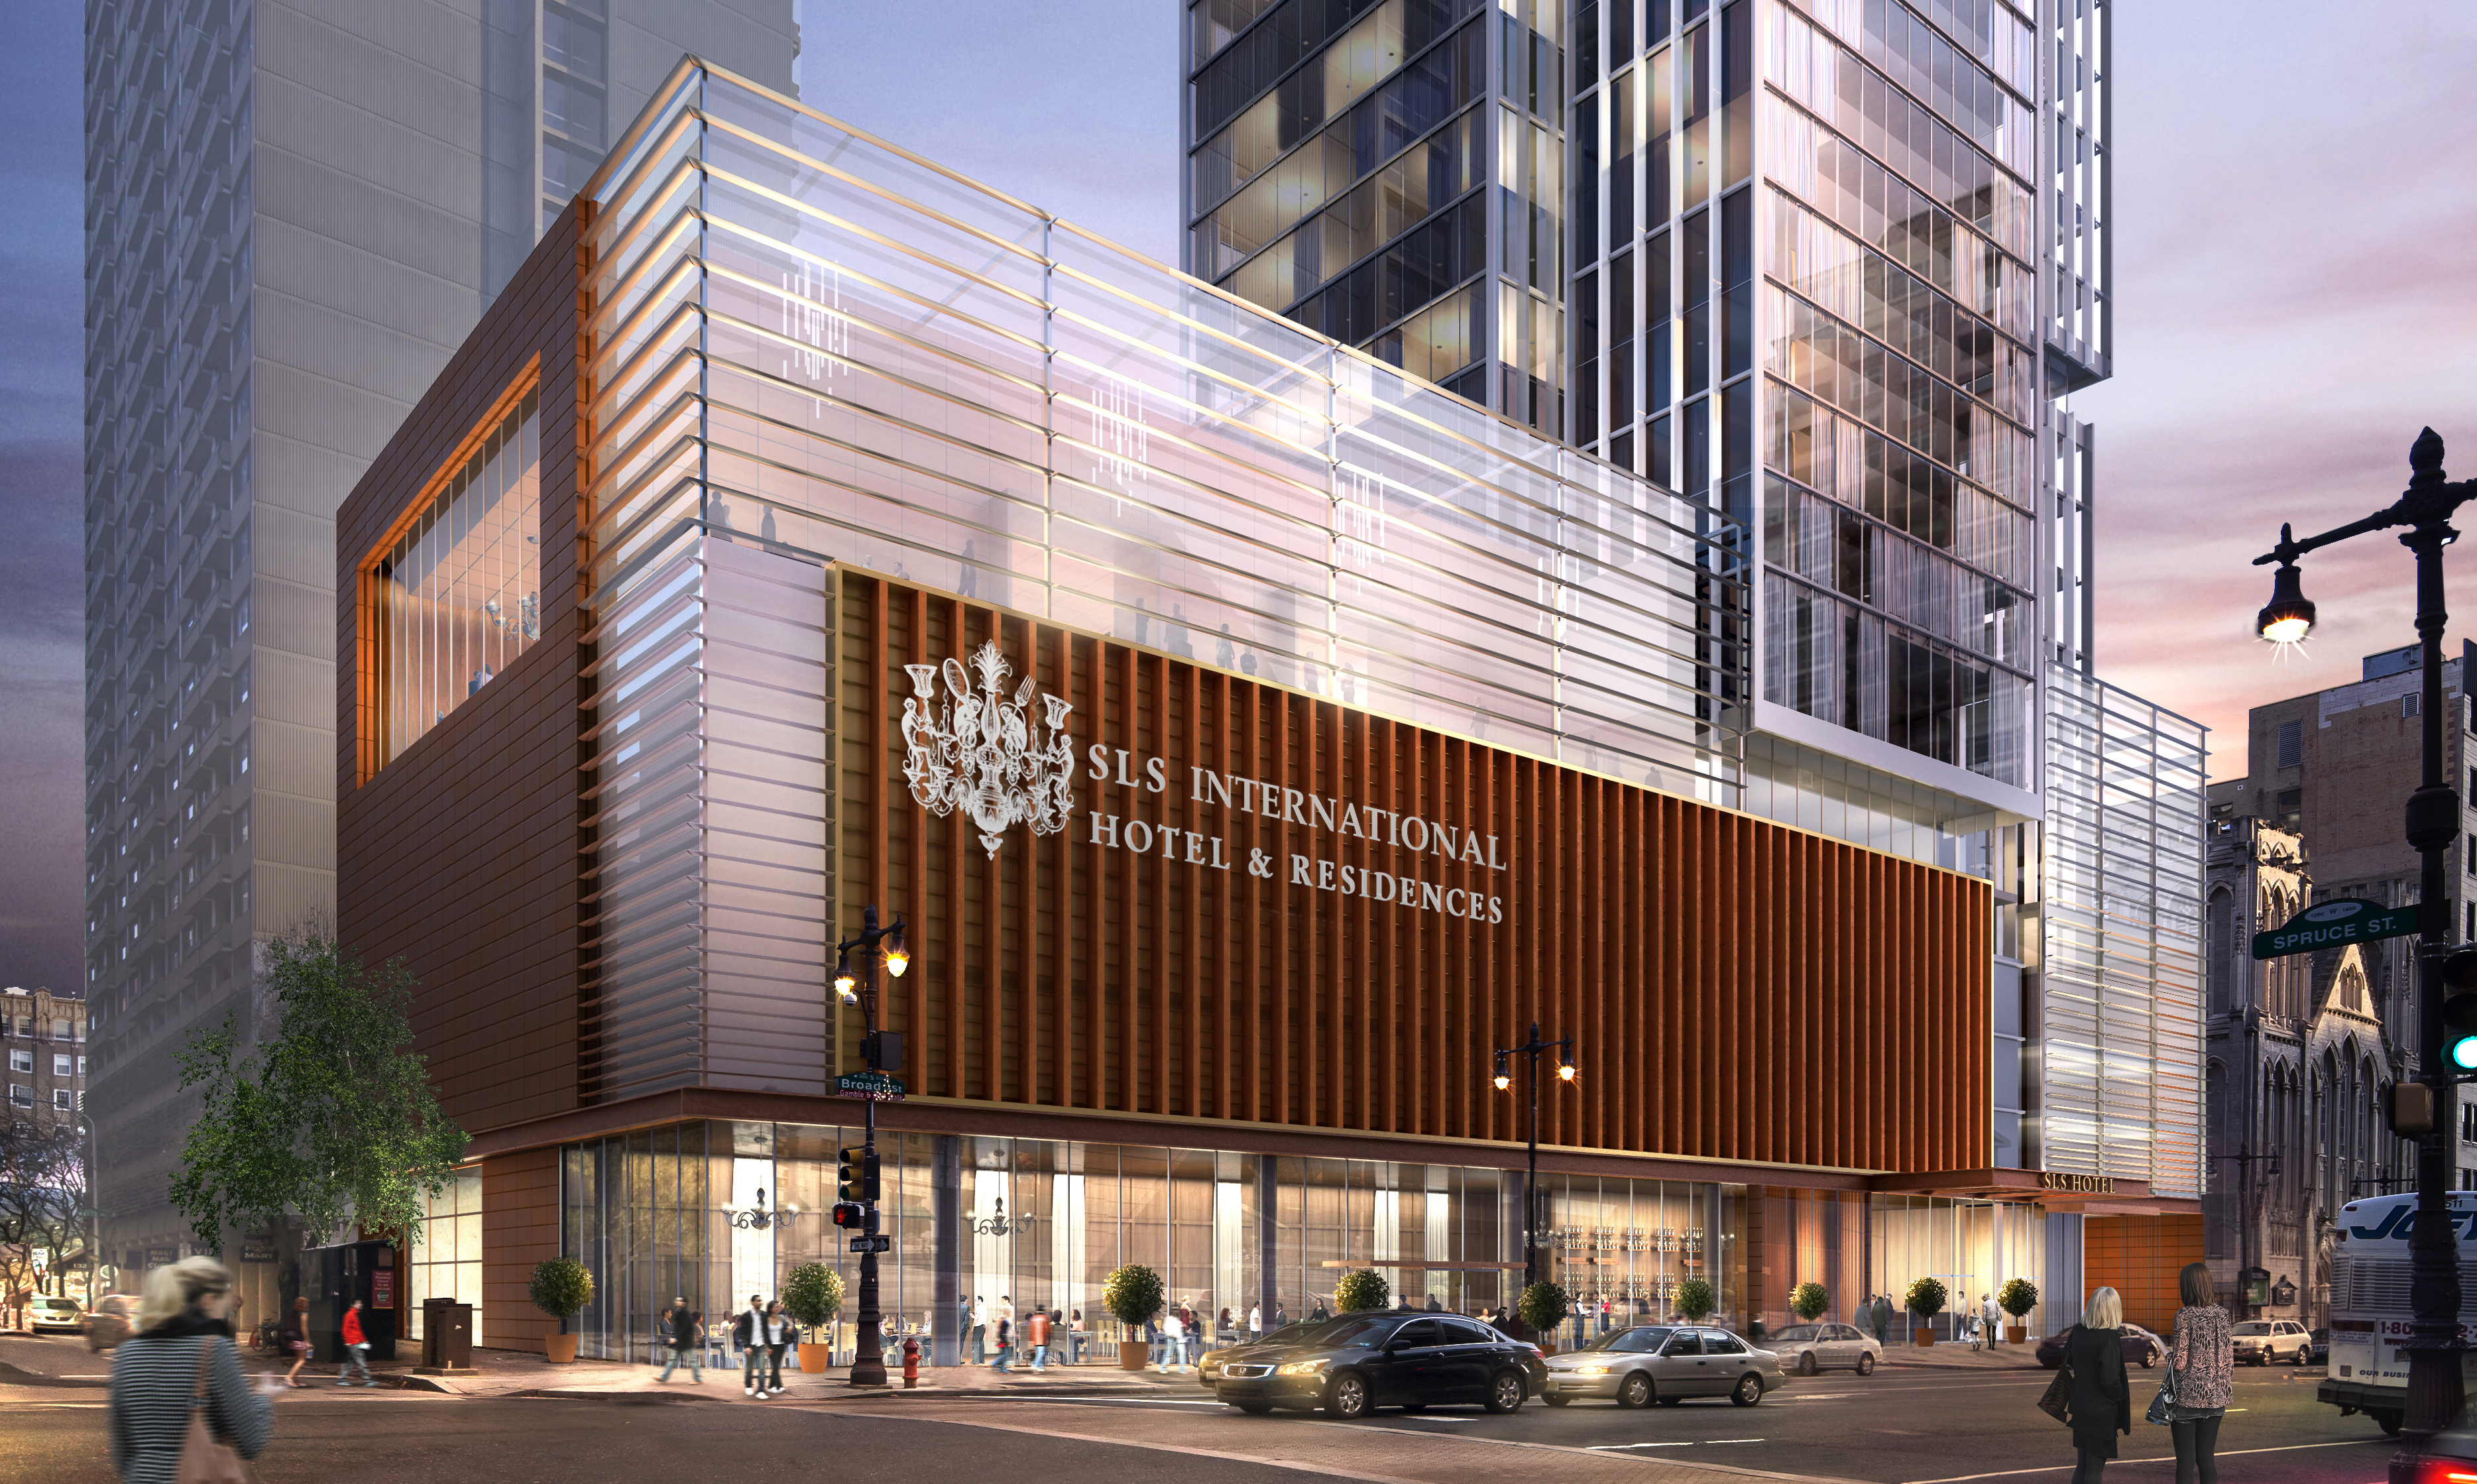 Dranoff's SLS International, Broad and Spruce. Rendering courtesy KPF Associates